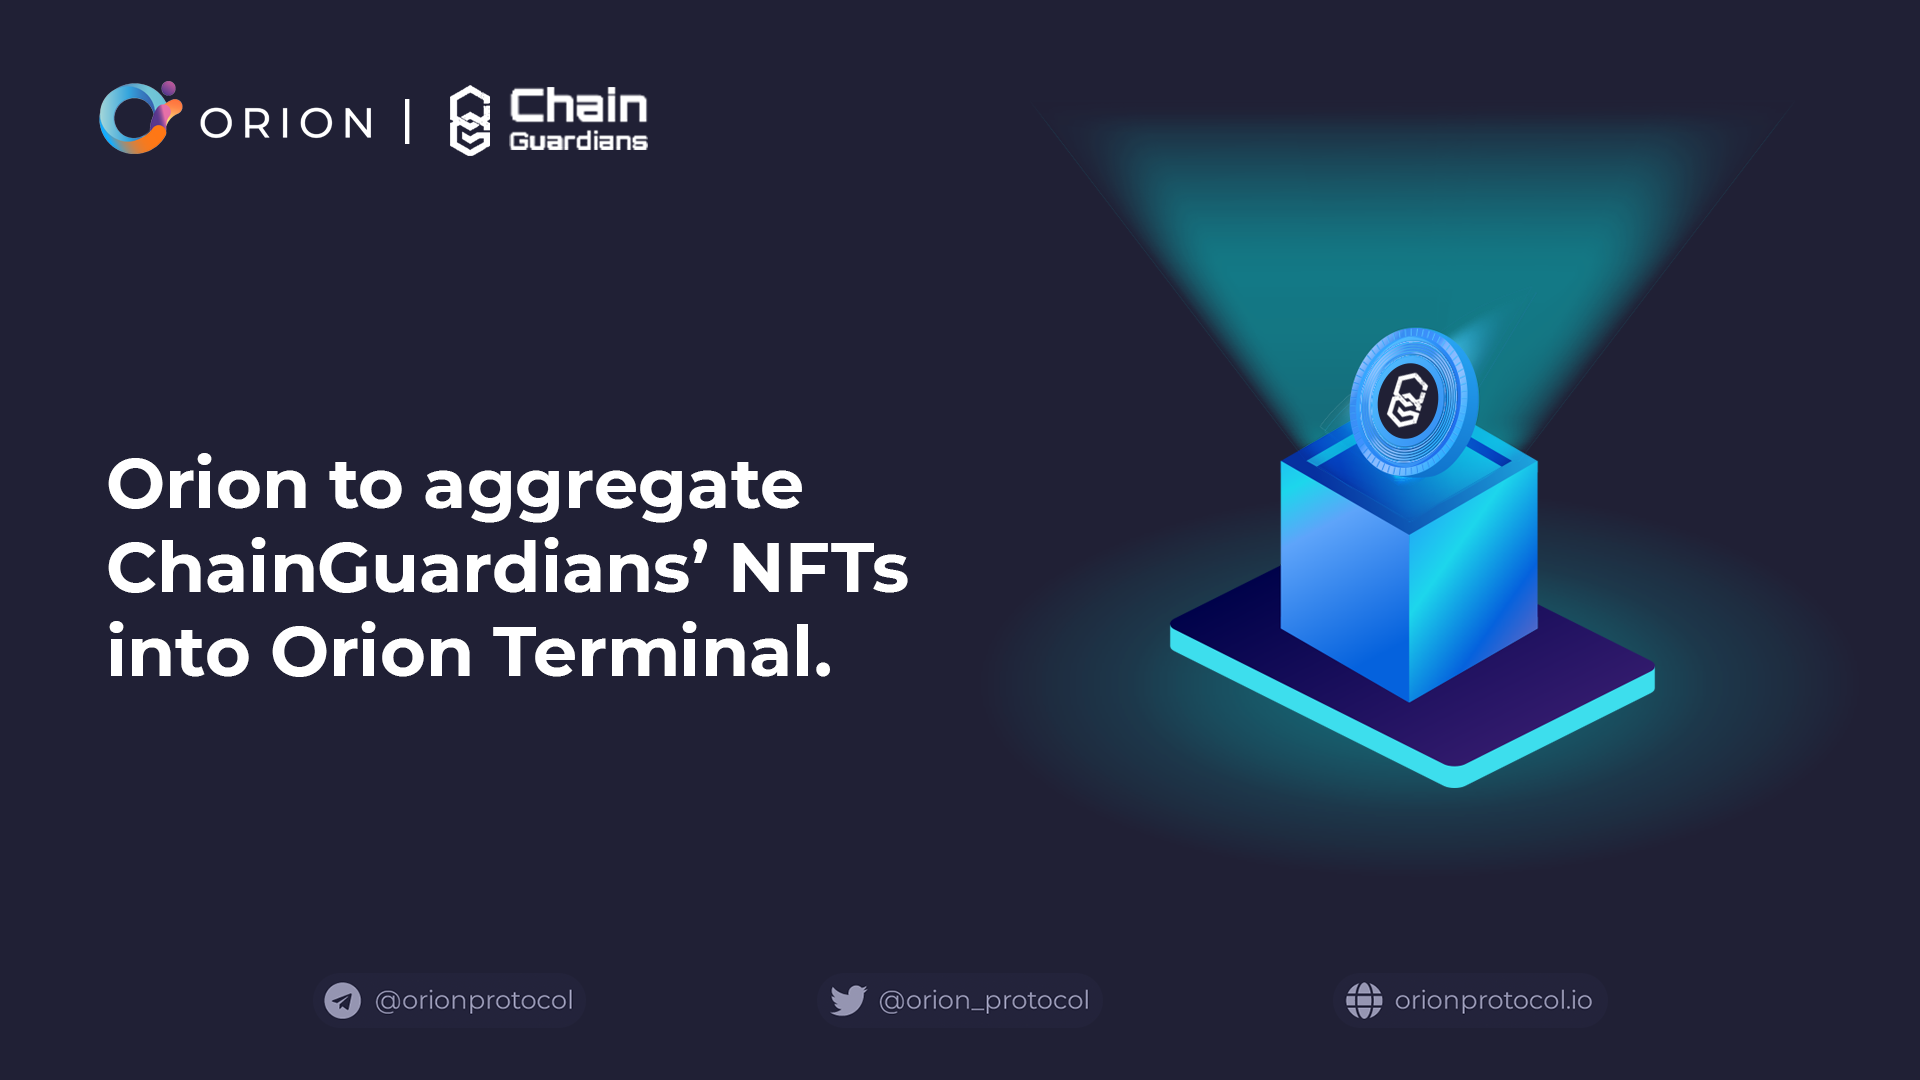 ChainGuardians integrated into Orion Terminal